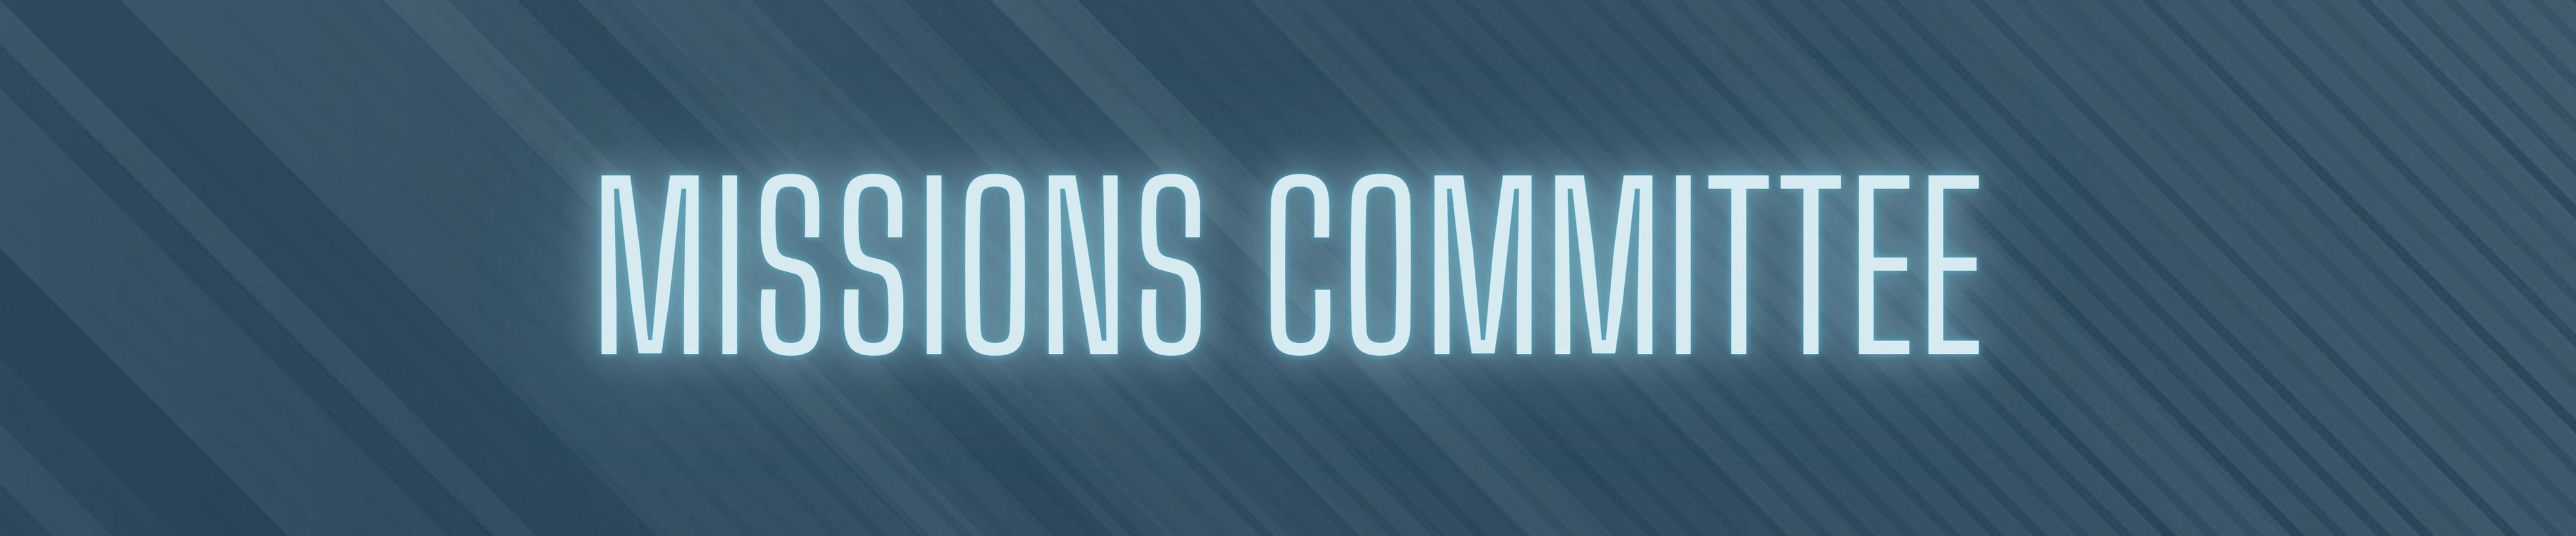 Missions Committee Banner.jpg